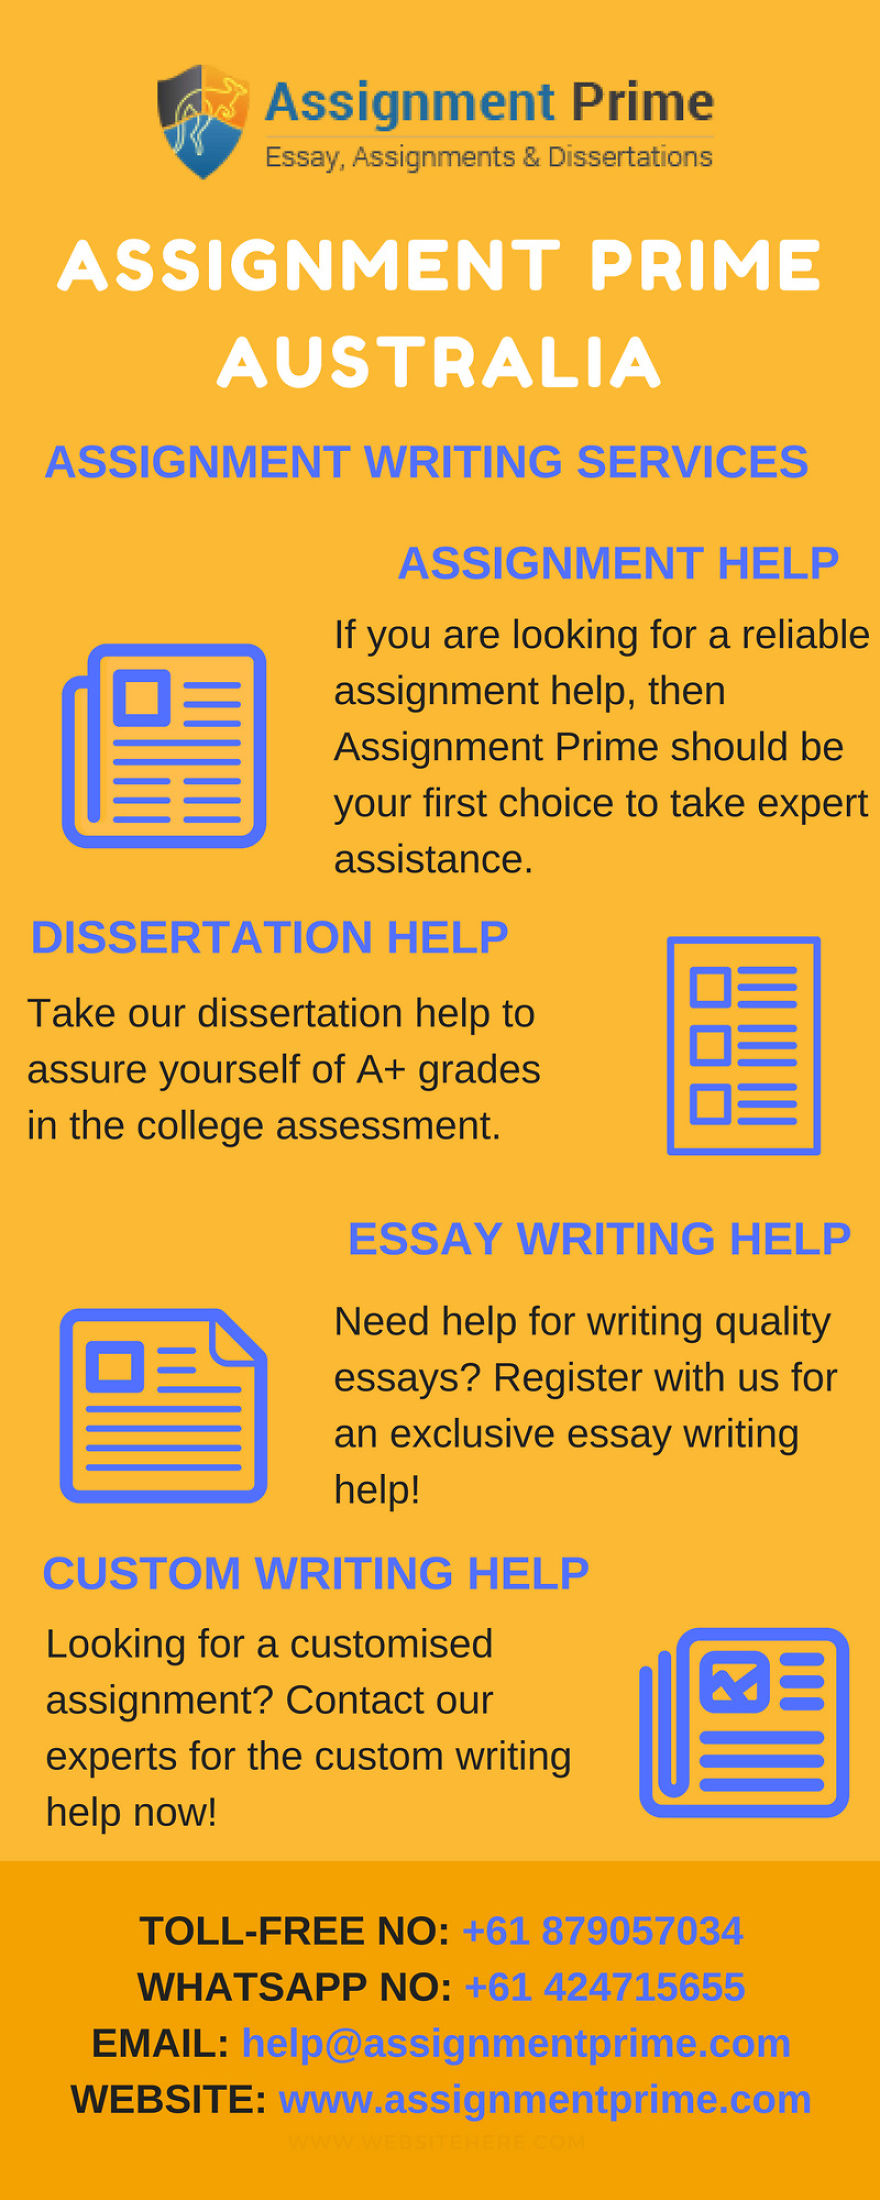 rhodes scholar essay example how to do a good dissertation hillary cheap thesis proposal editor services au professional custom writing service offers custom essays term papers research